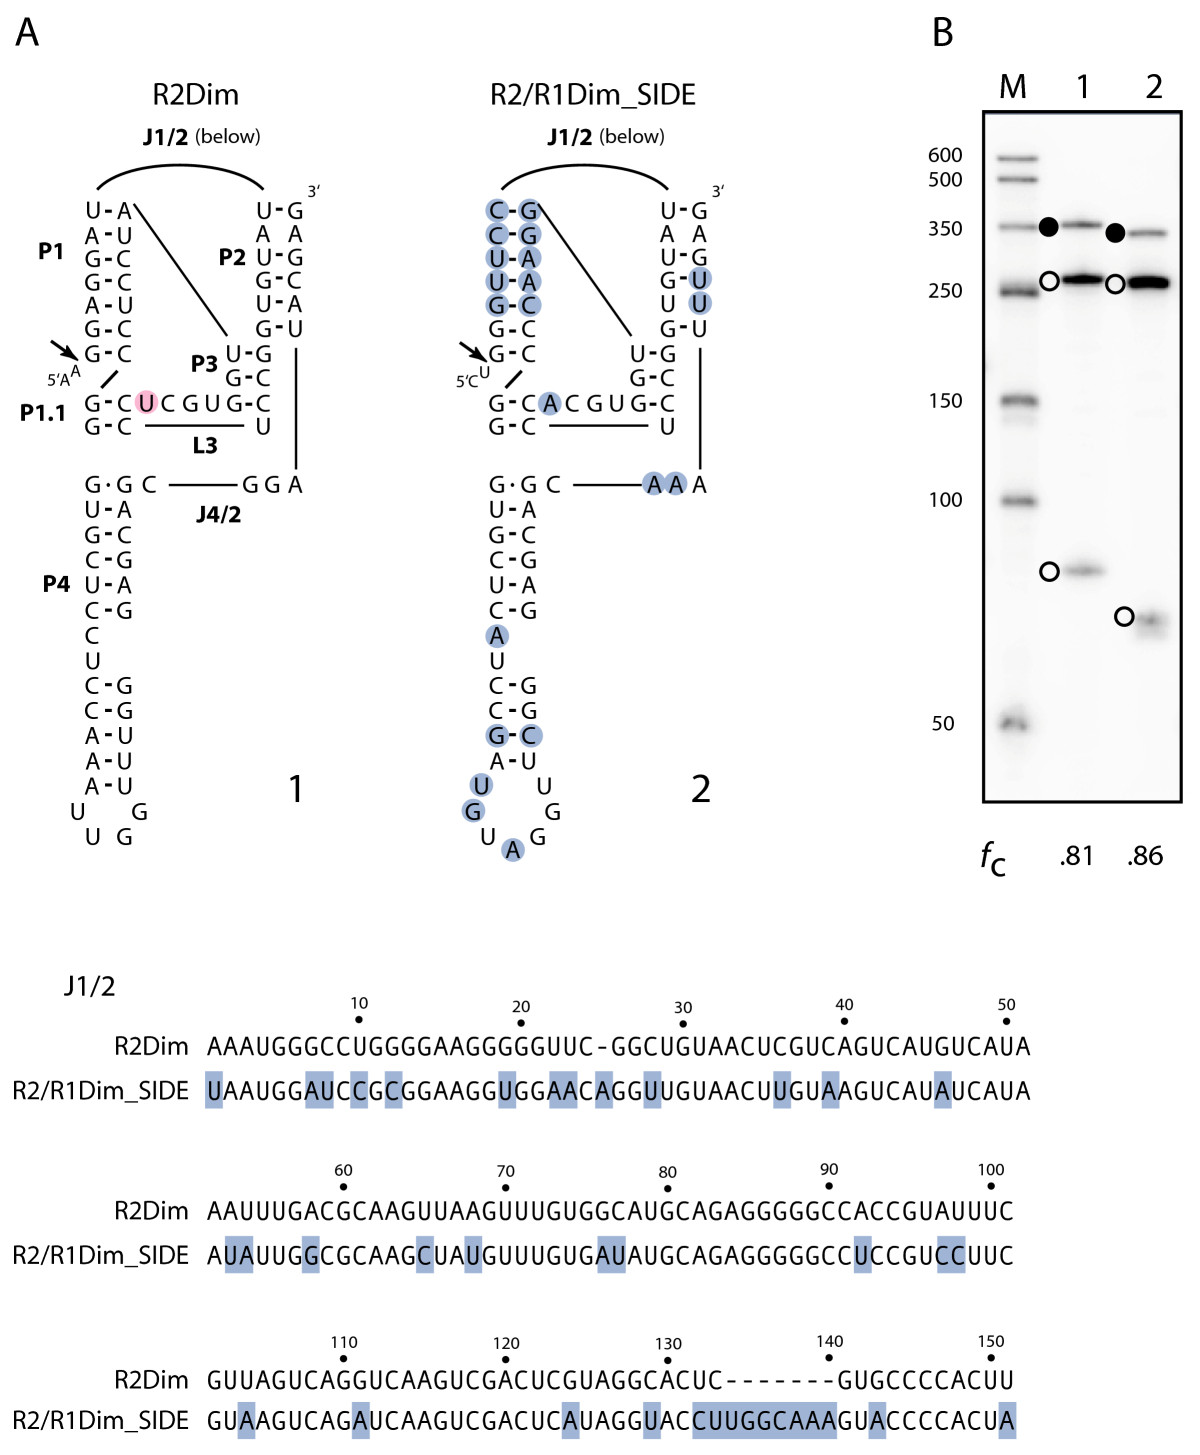 http://static-content.springer.com/image/art%3A10.1186%2F1759-8753-3-10/MediaObjects/13100_2012_Article_50_Fig7_HTML.jpg